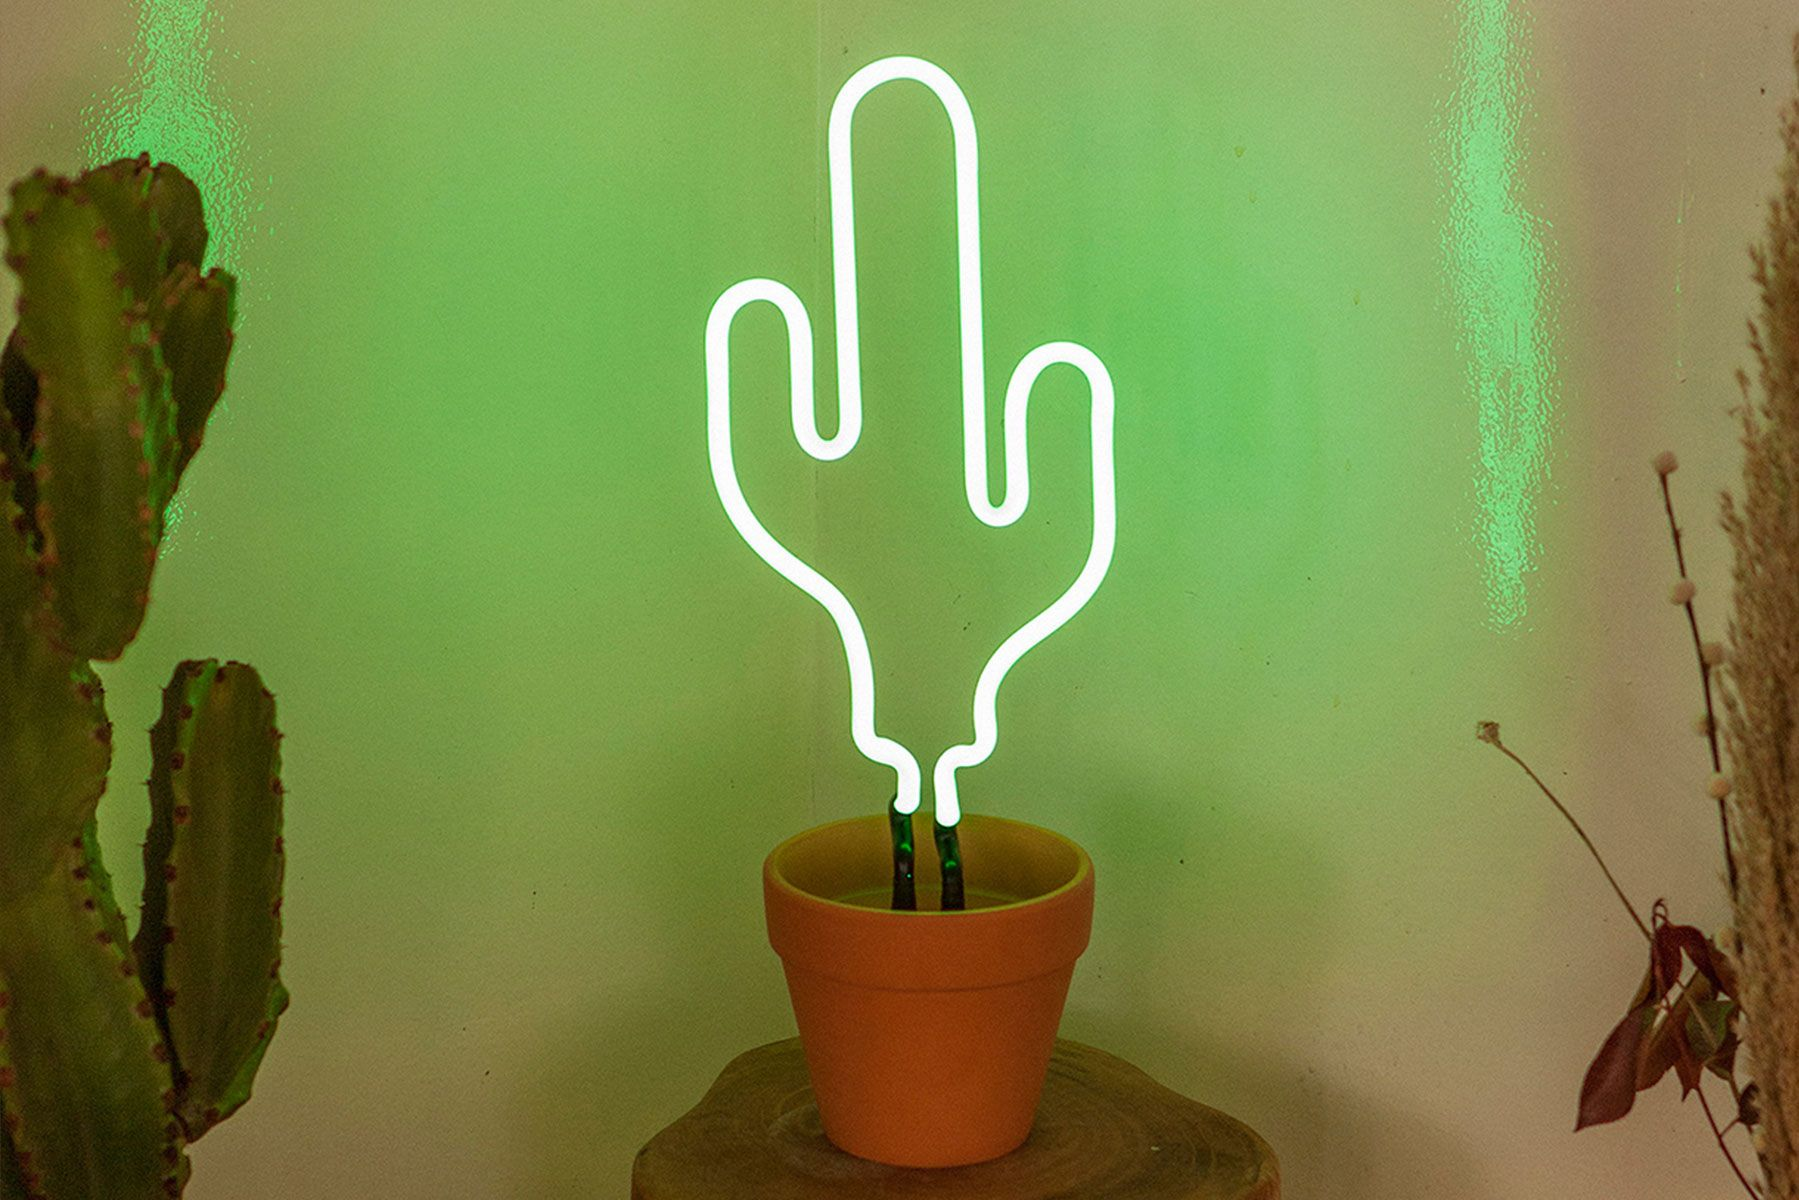 Smile And Shine Neon Yellow Doiy Design Neon Cactus Cactus Lamp Modern Bedroom Accessories